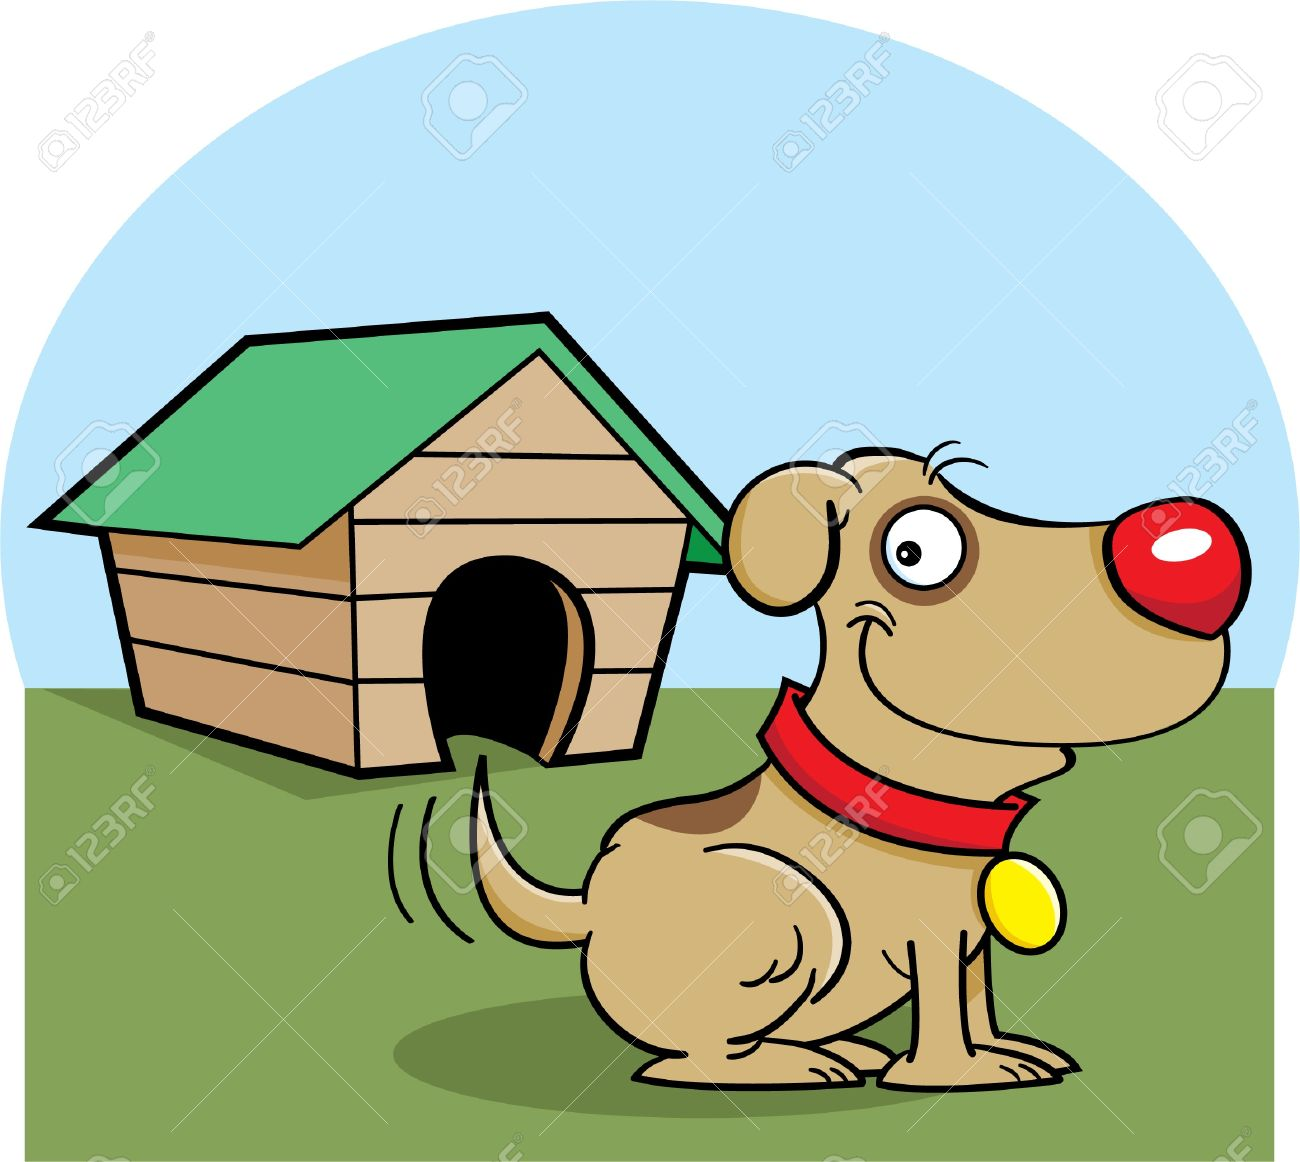 Cartoon illustration of a dog with a dog house Stock Vector - 14662352